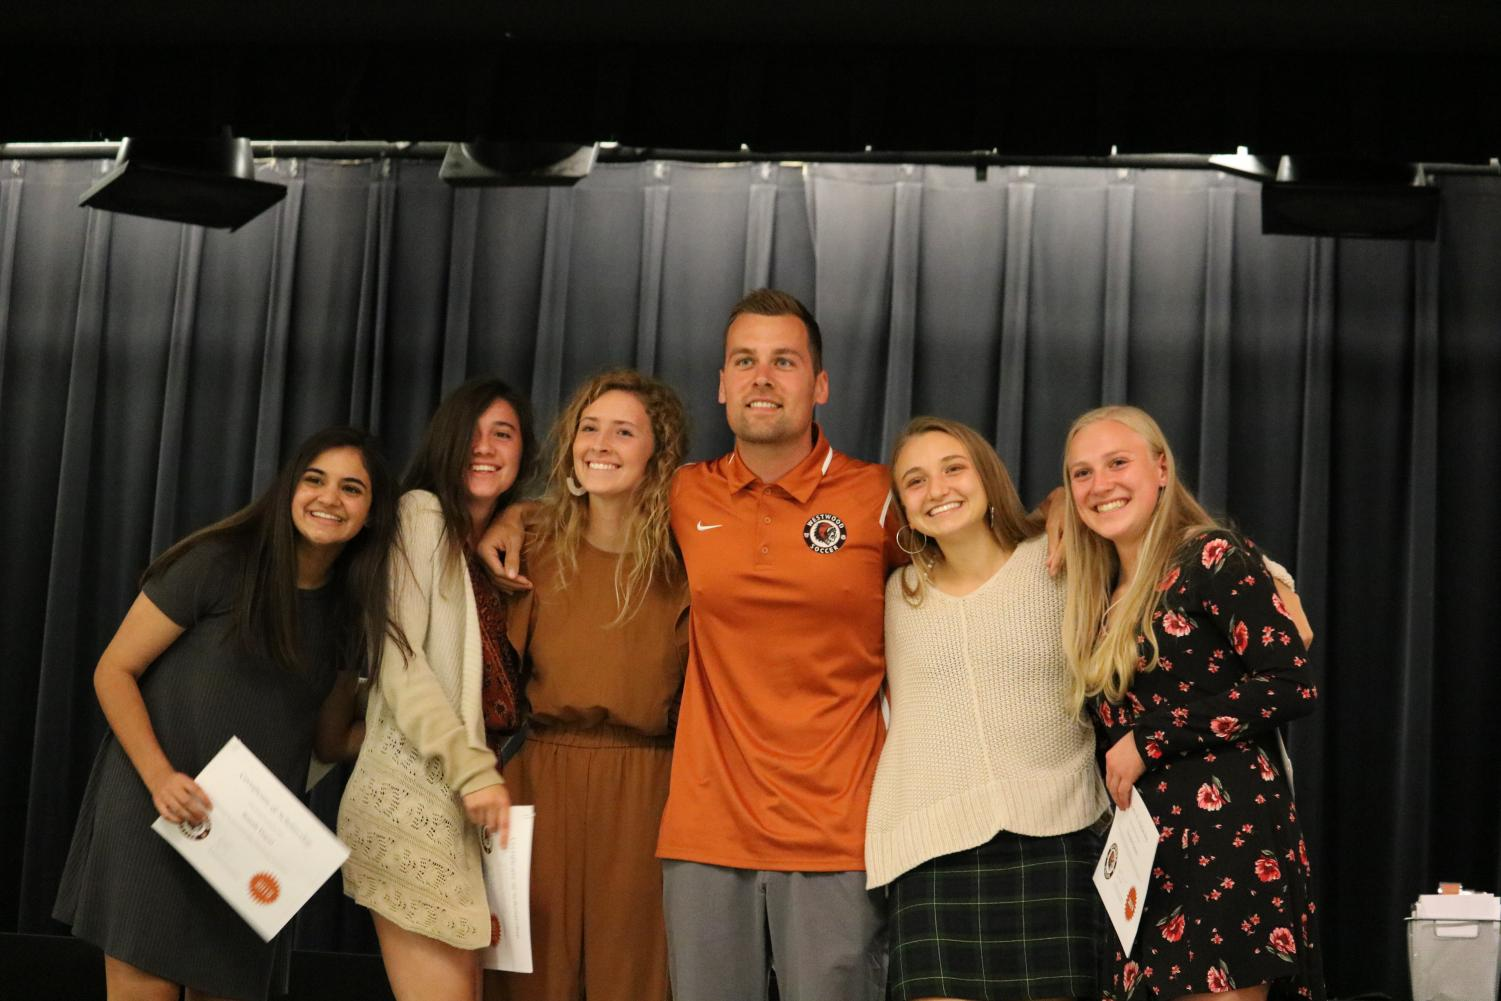 Coach+Malcolm+Framjee+presents+soccer+awards+to+seniors+Sonali+Dayal%2C+Maddison+Larrea%2C+Marisa+Rech%2C+Claire+Tinker%2C+and+Christie+French.